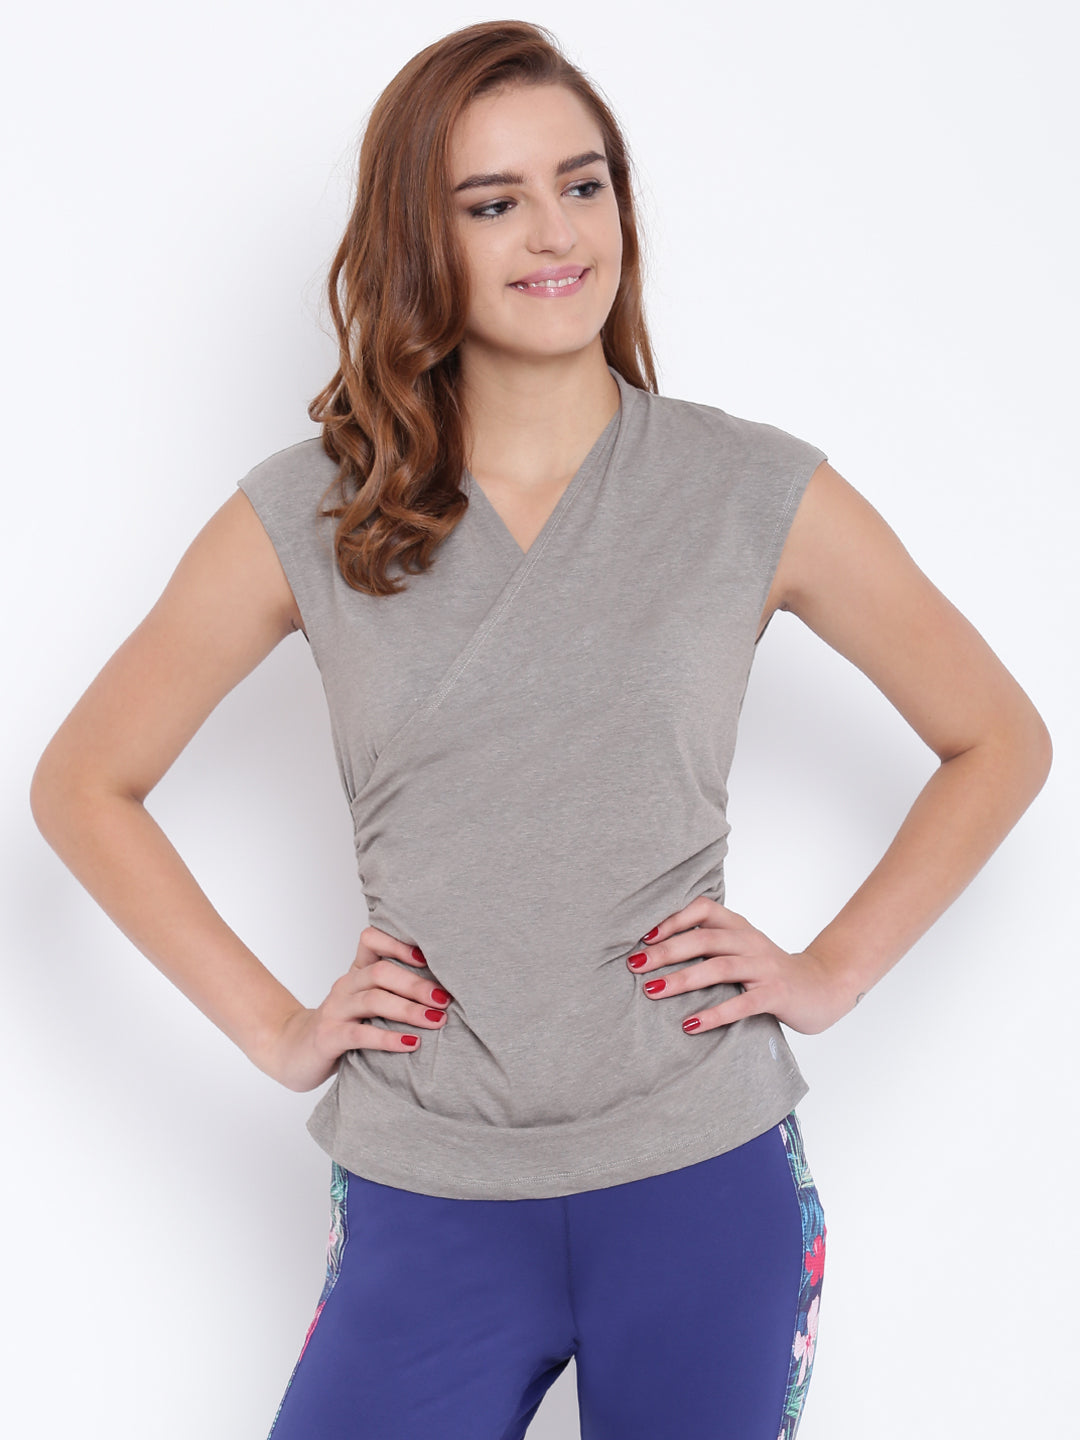 A model wearing a tan women's wrap top, Fairtrade Certified